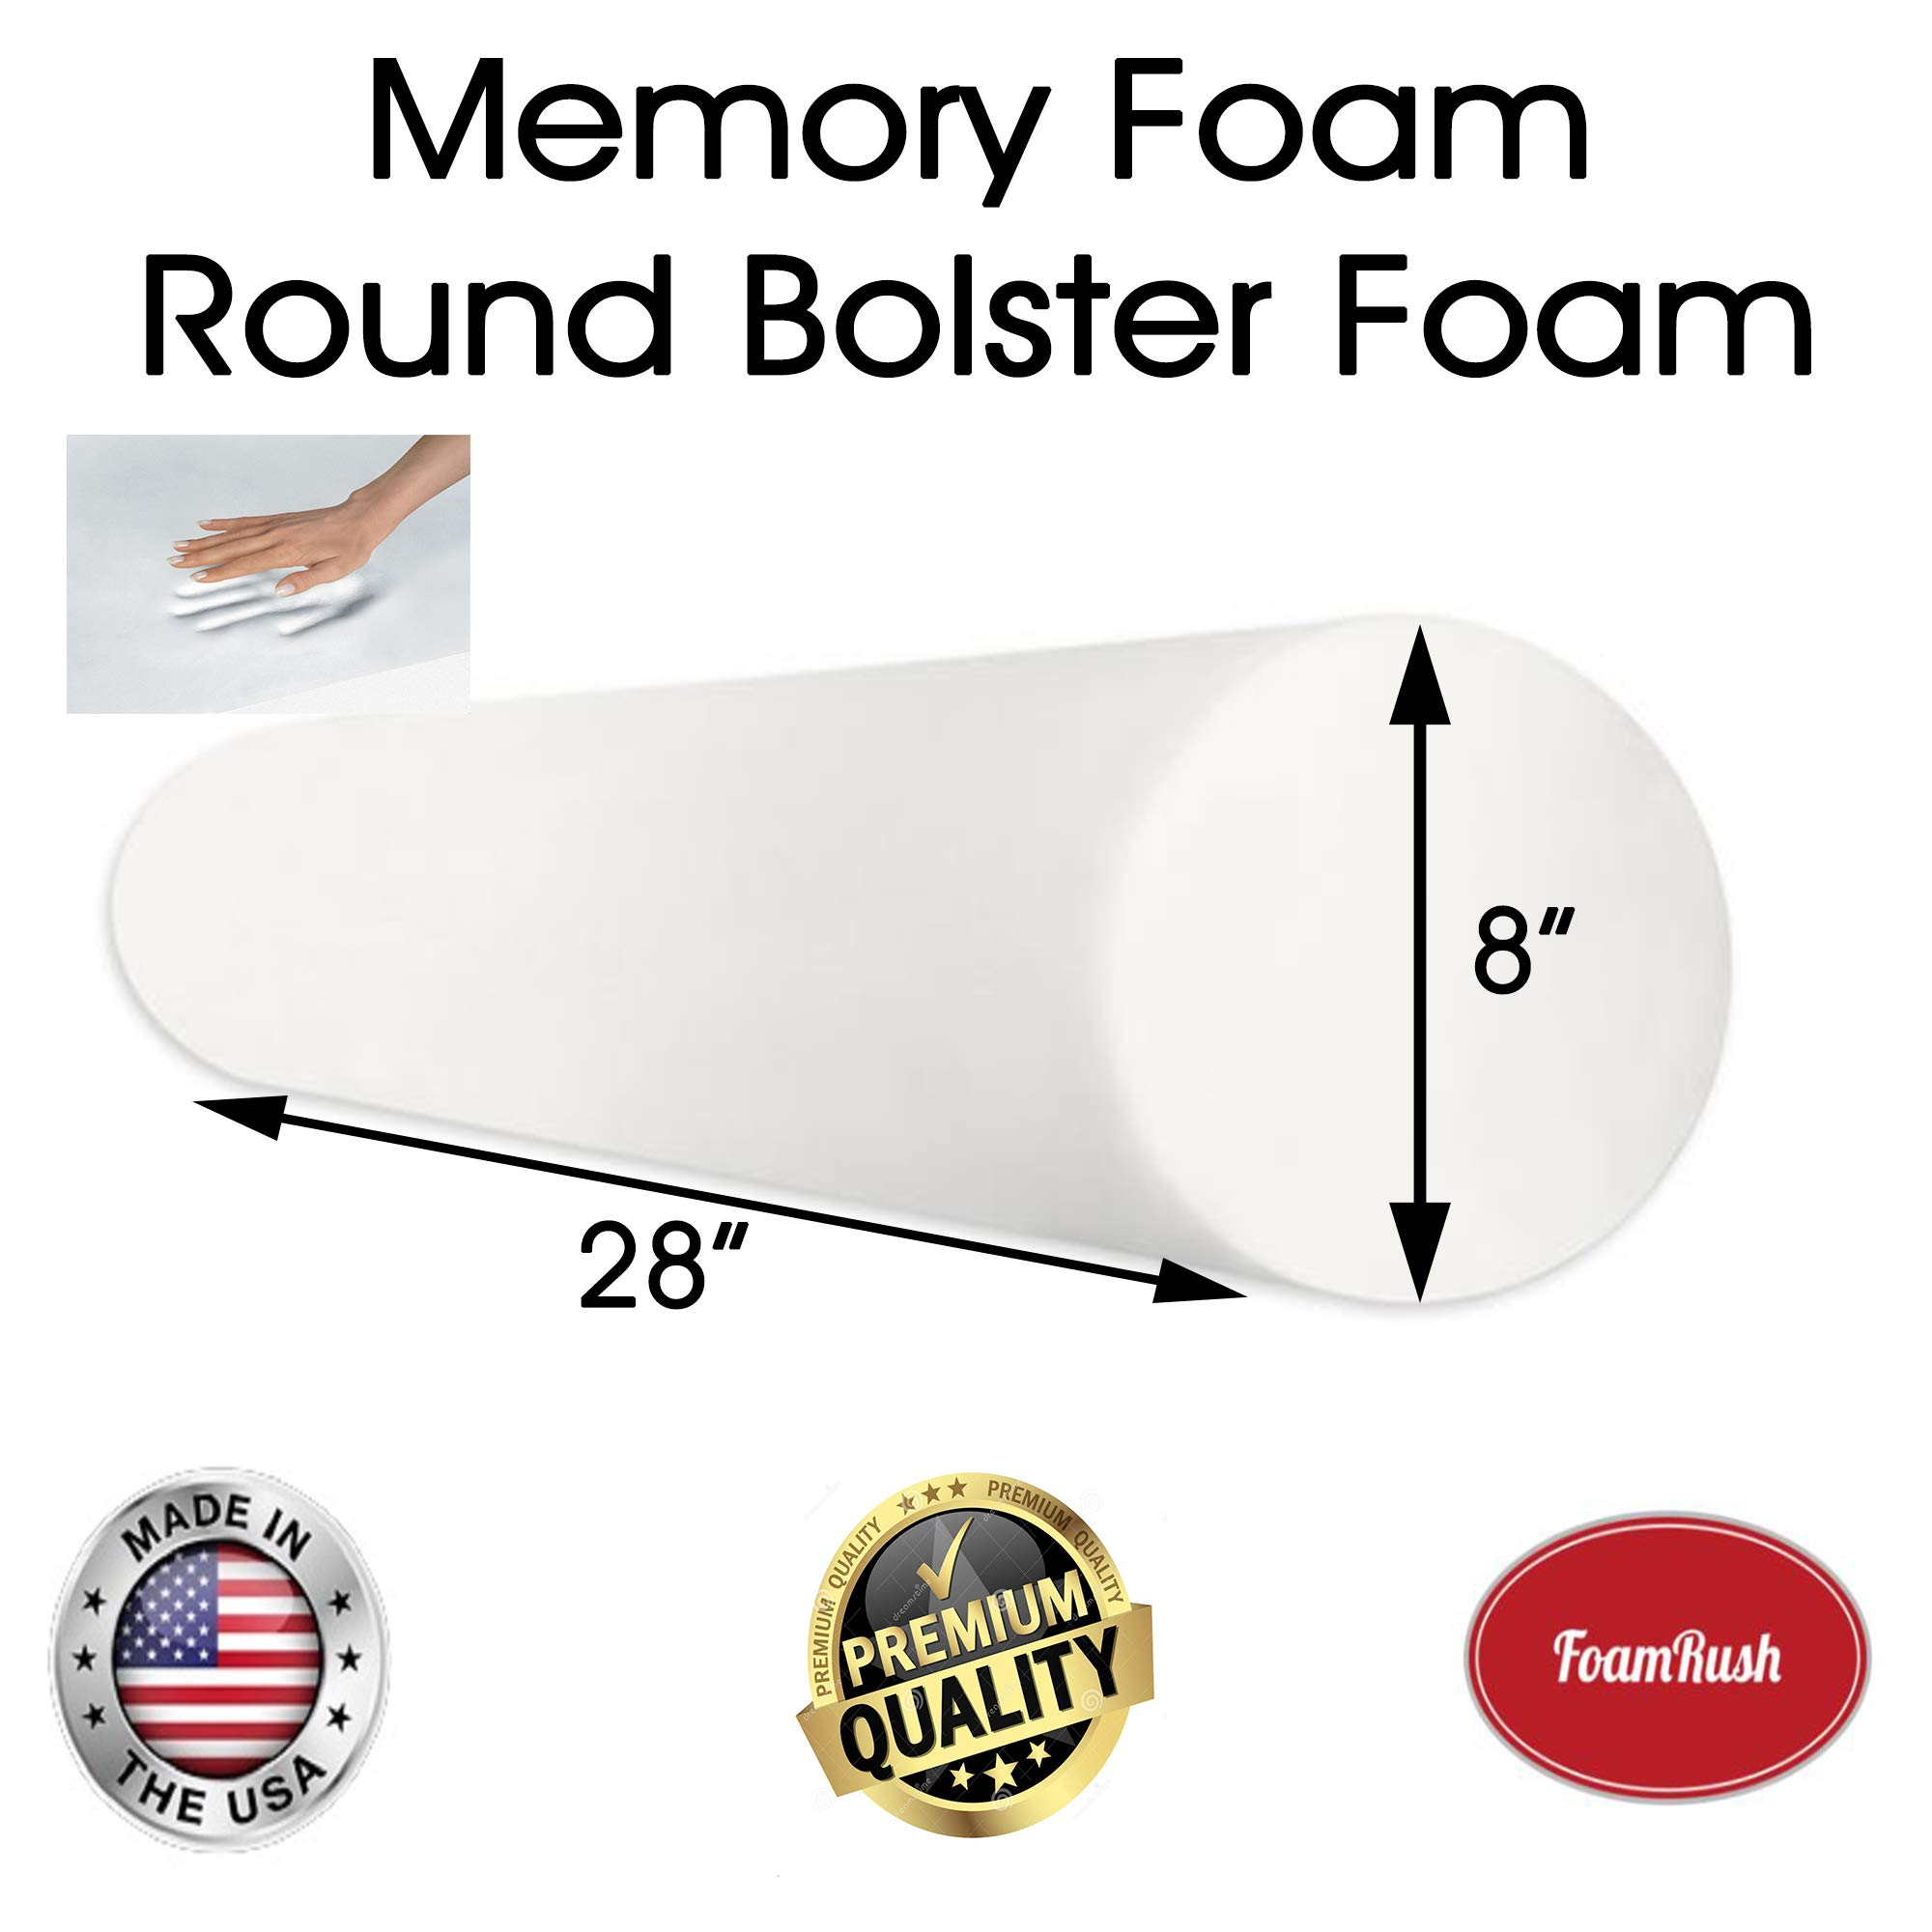 FoamRush 8'' Diameter x 28'' Long Premium Quality Round Bolster Memory Foam Roll Insert Replacement (Ideal for Home Accent Décor Positioning and General Fitness) Made in USA